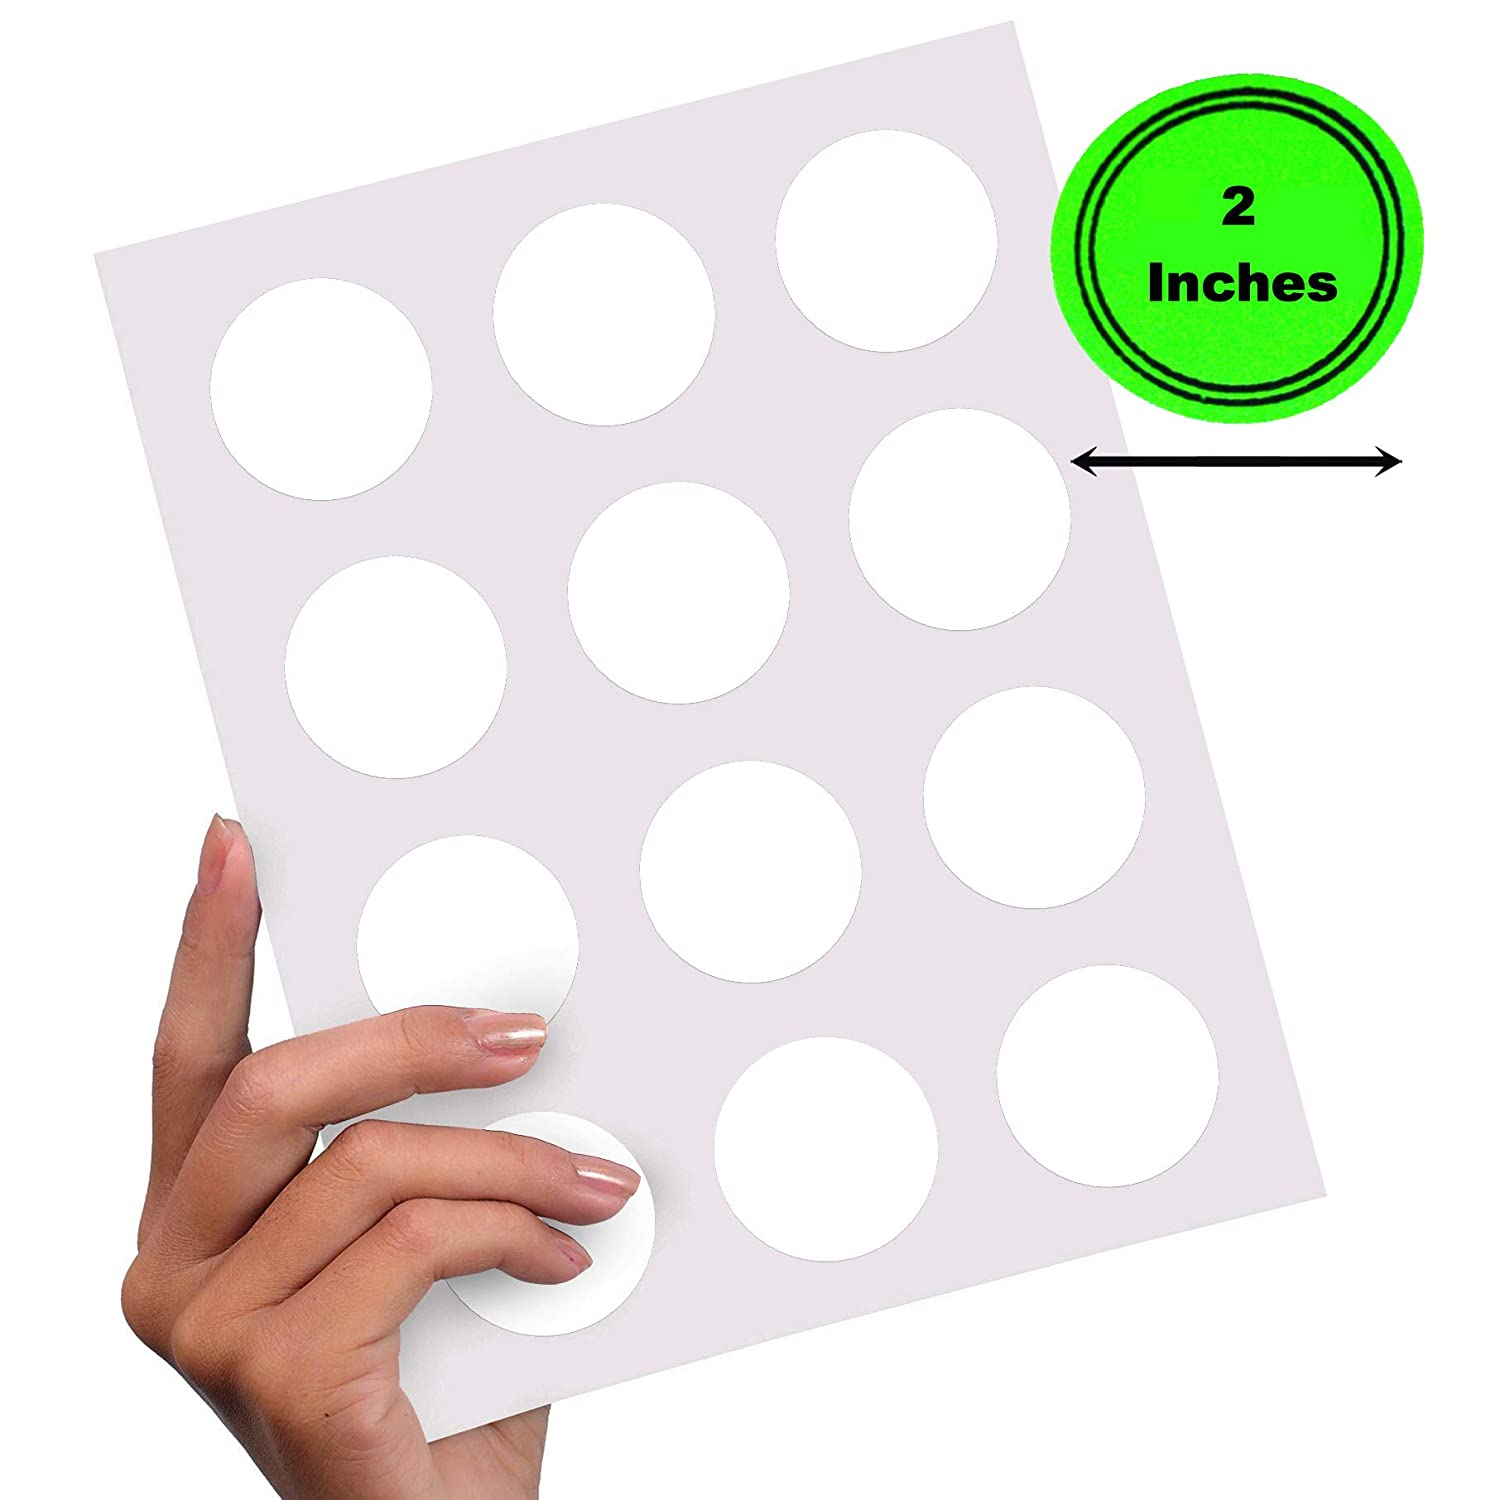 graphic relating to Printable Round Labels identified as 180 Labels, 2 Inch Spherical Labels Printable Labels (15 Sheets of 12 Rounds)  White Printable Sticker Paper for Printer Circle Template Sticker Labels